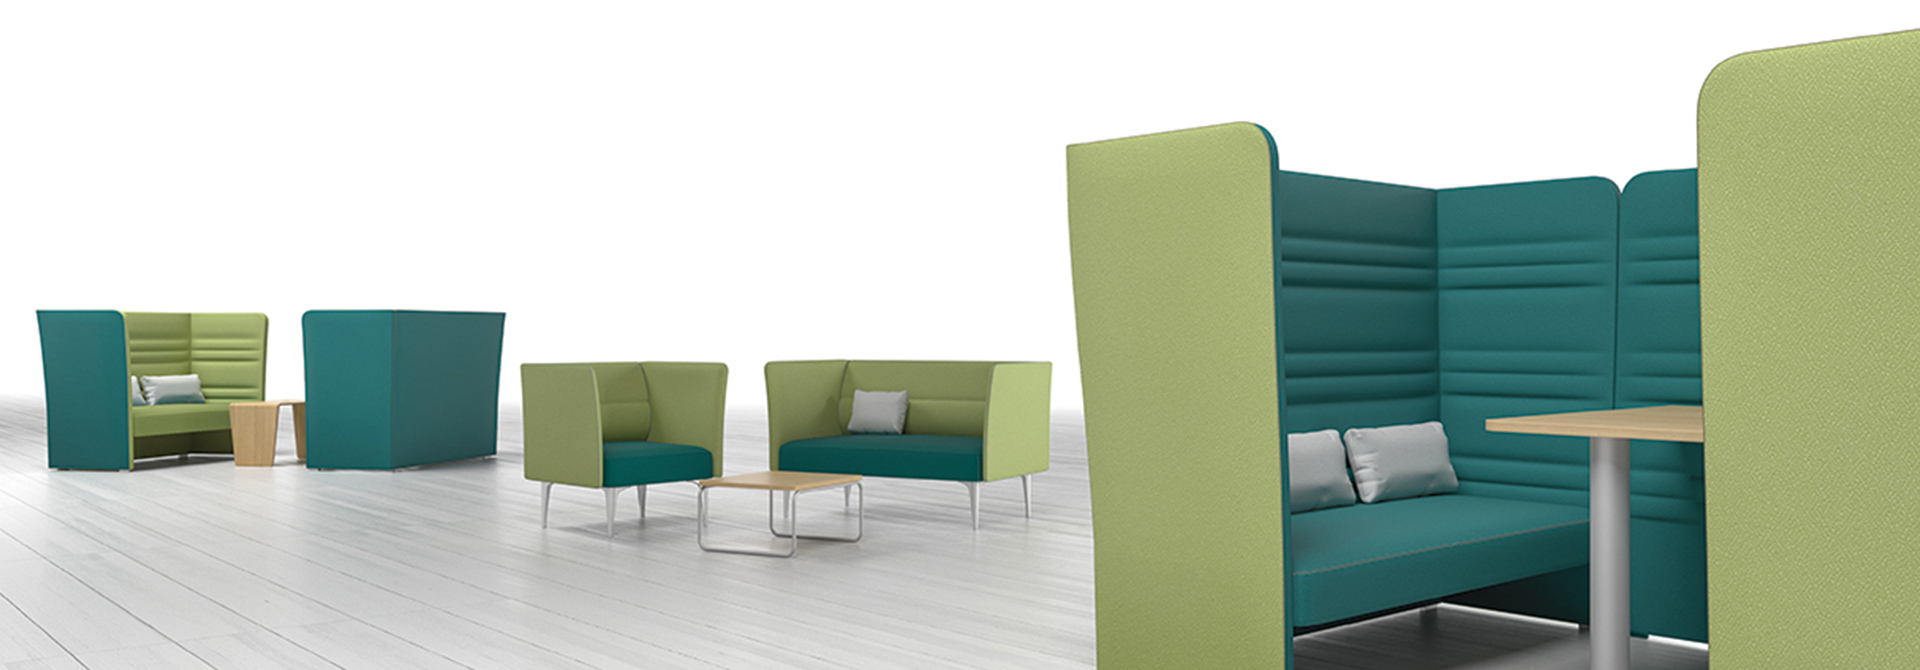 Sinua | Soft Seating - Smart Office | LTContract